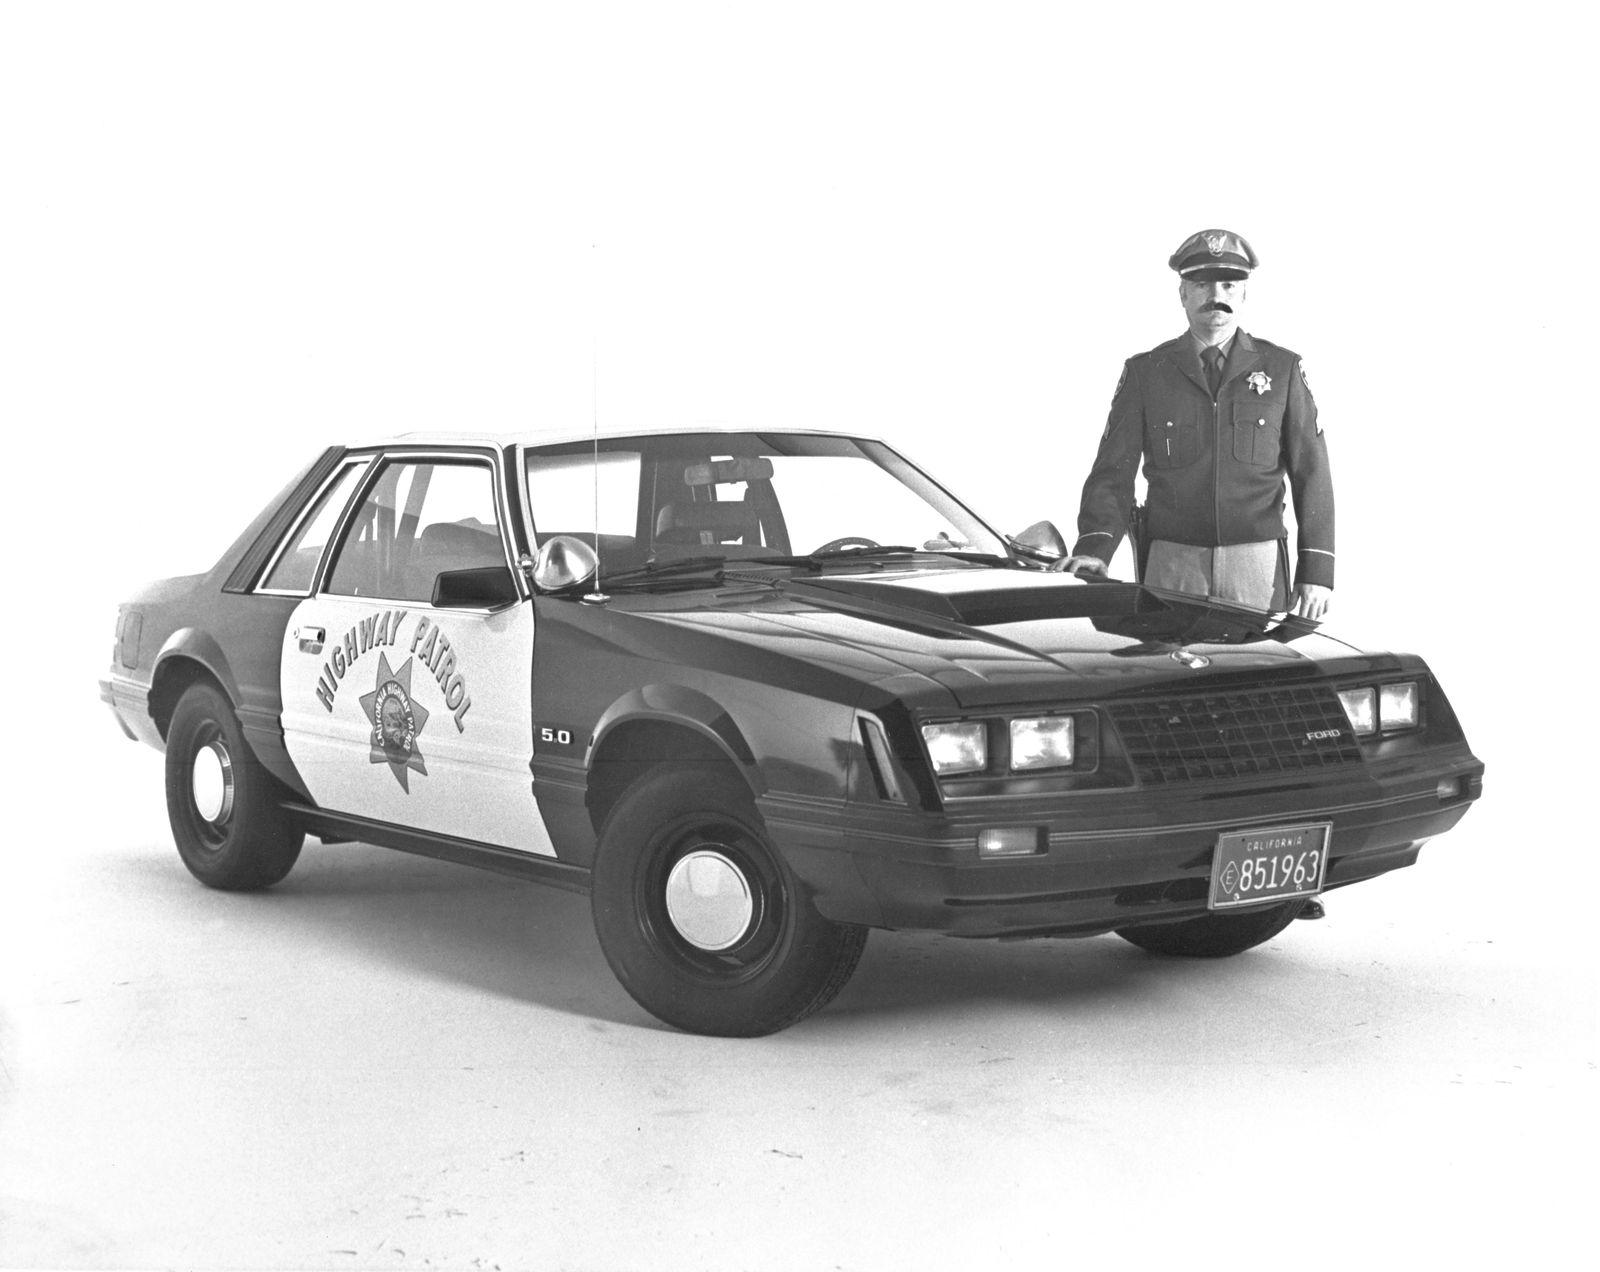 1982 Ford Mustang SSP